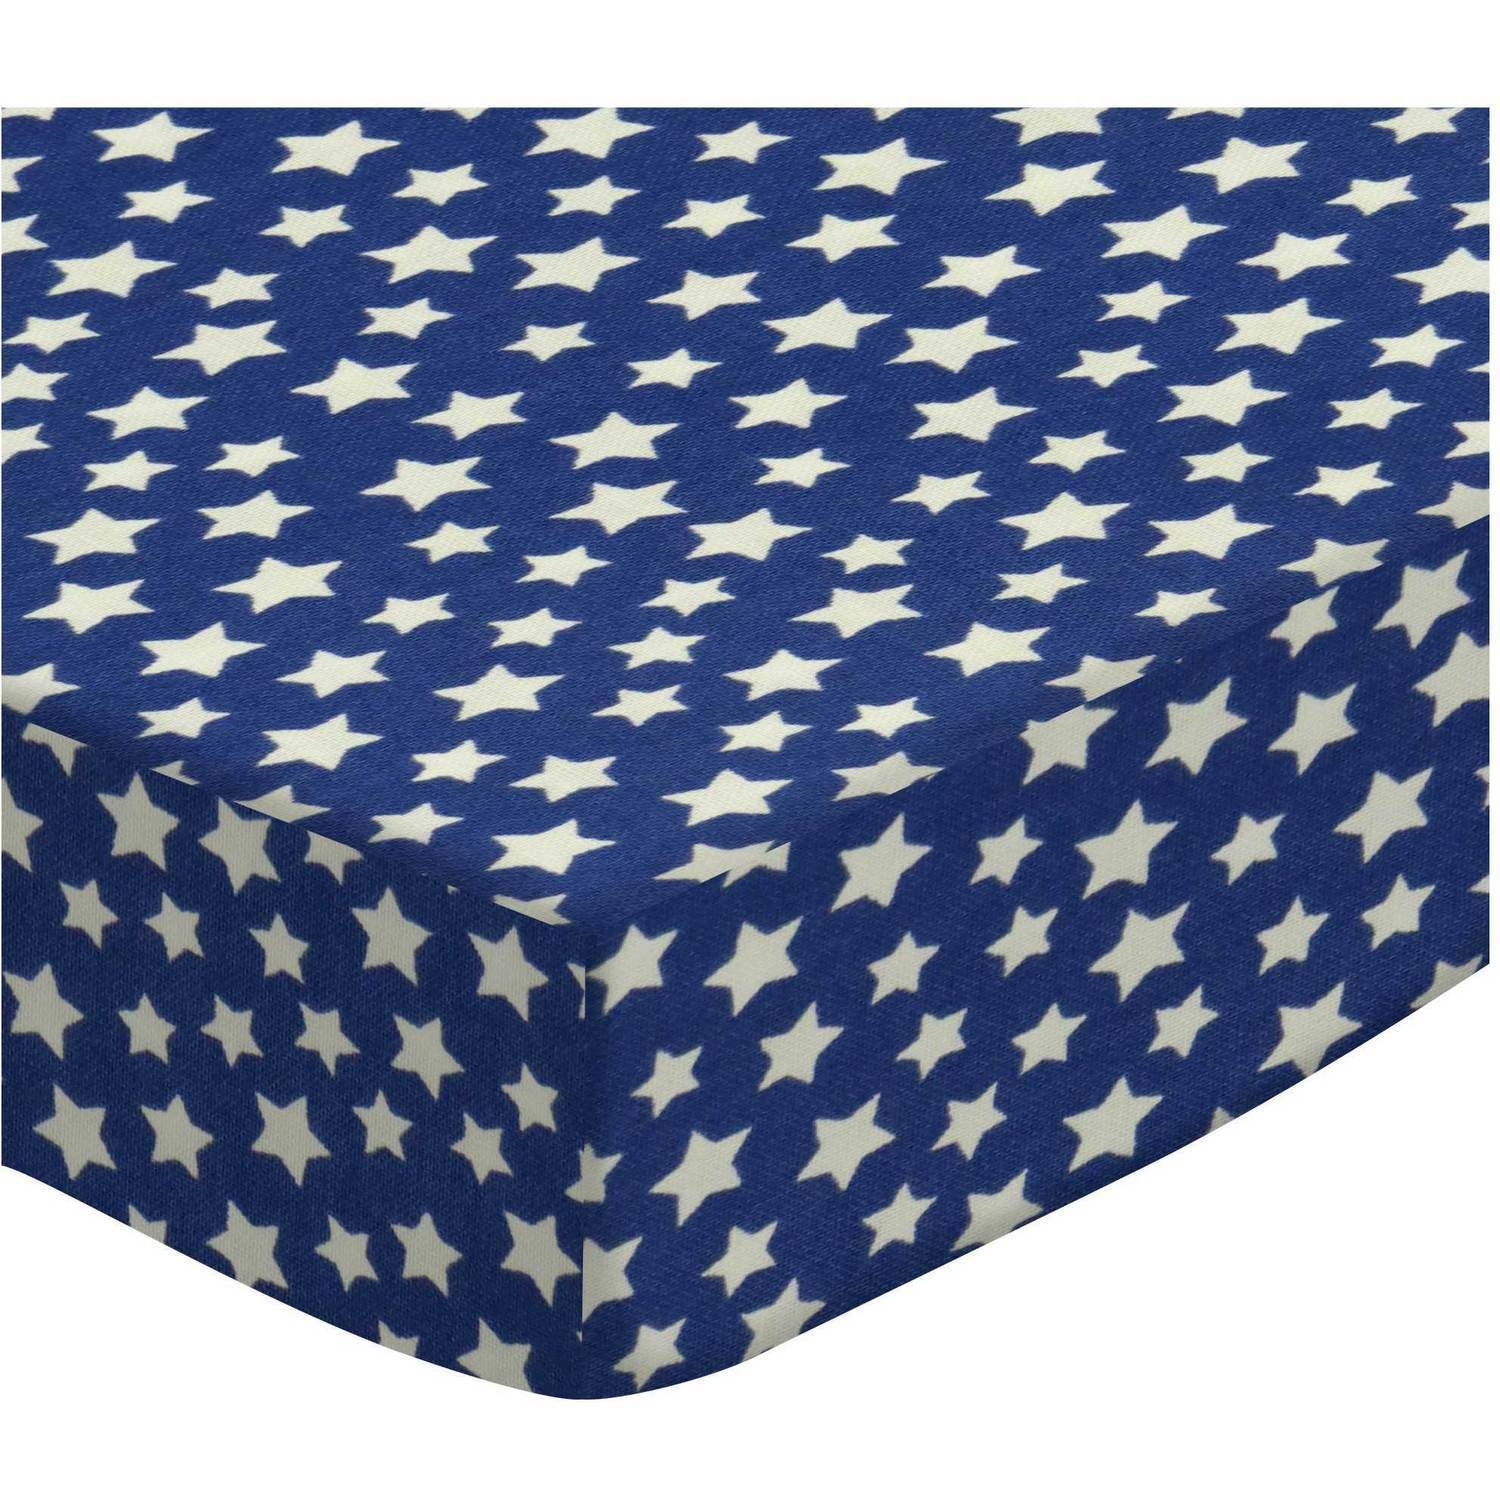 SheetWorld Fitted Crib / Toddler Sheet - Primary Stars White On Navy Woven (Choose Your Color)